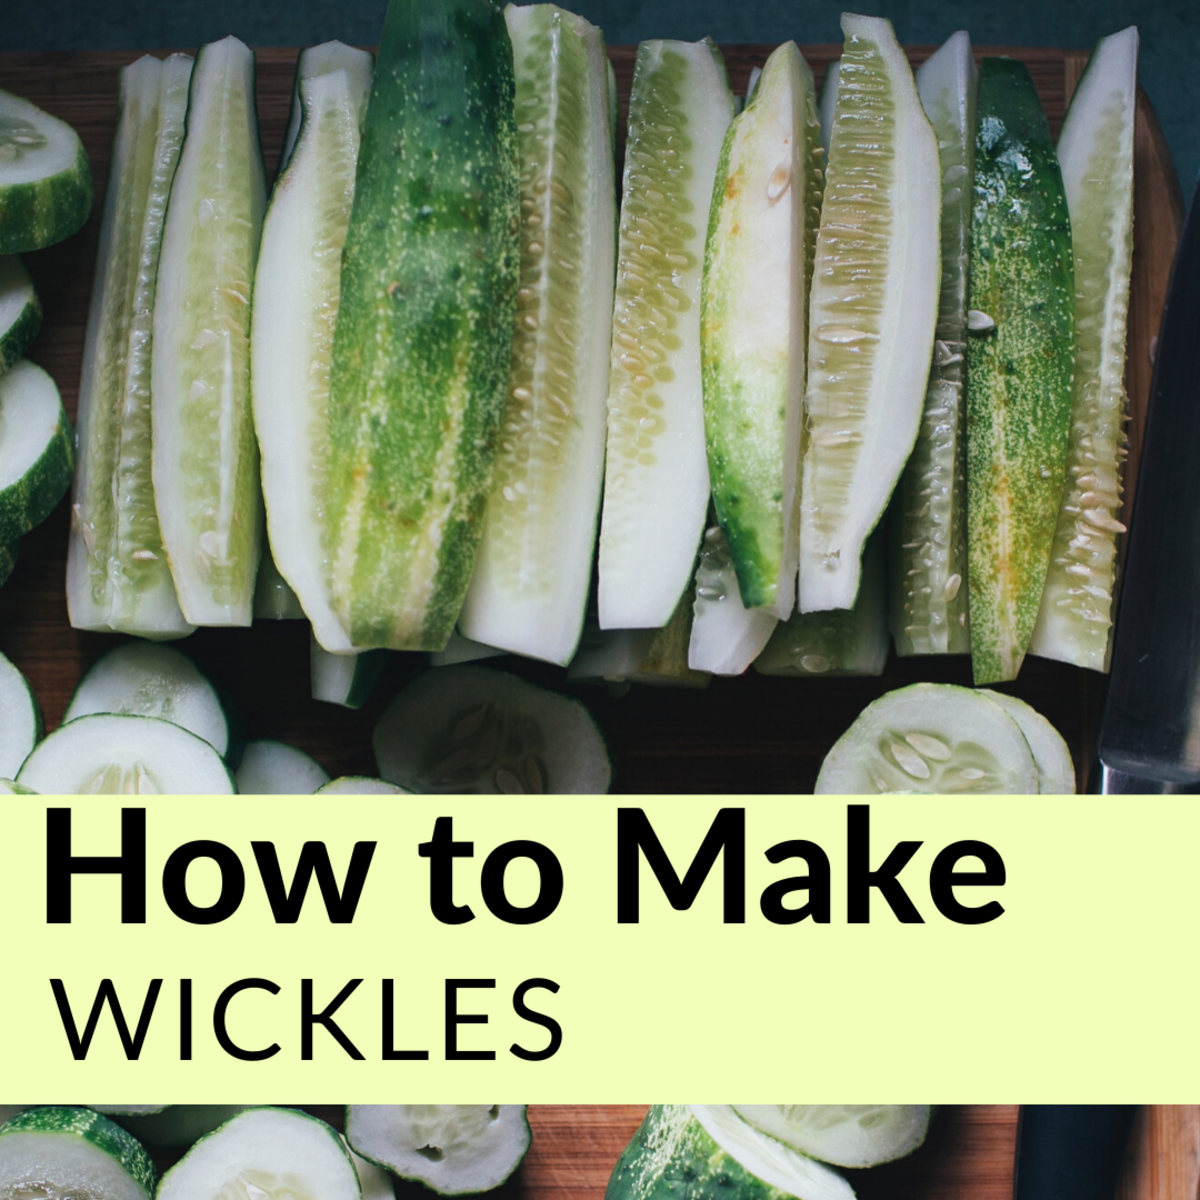 How to Make Wickles